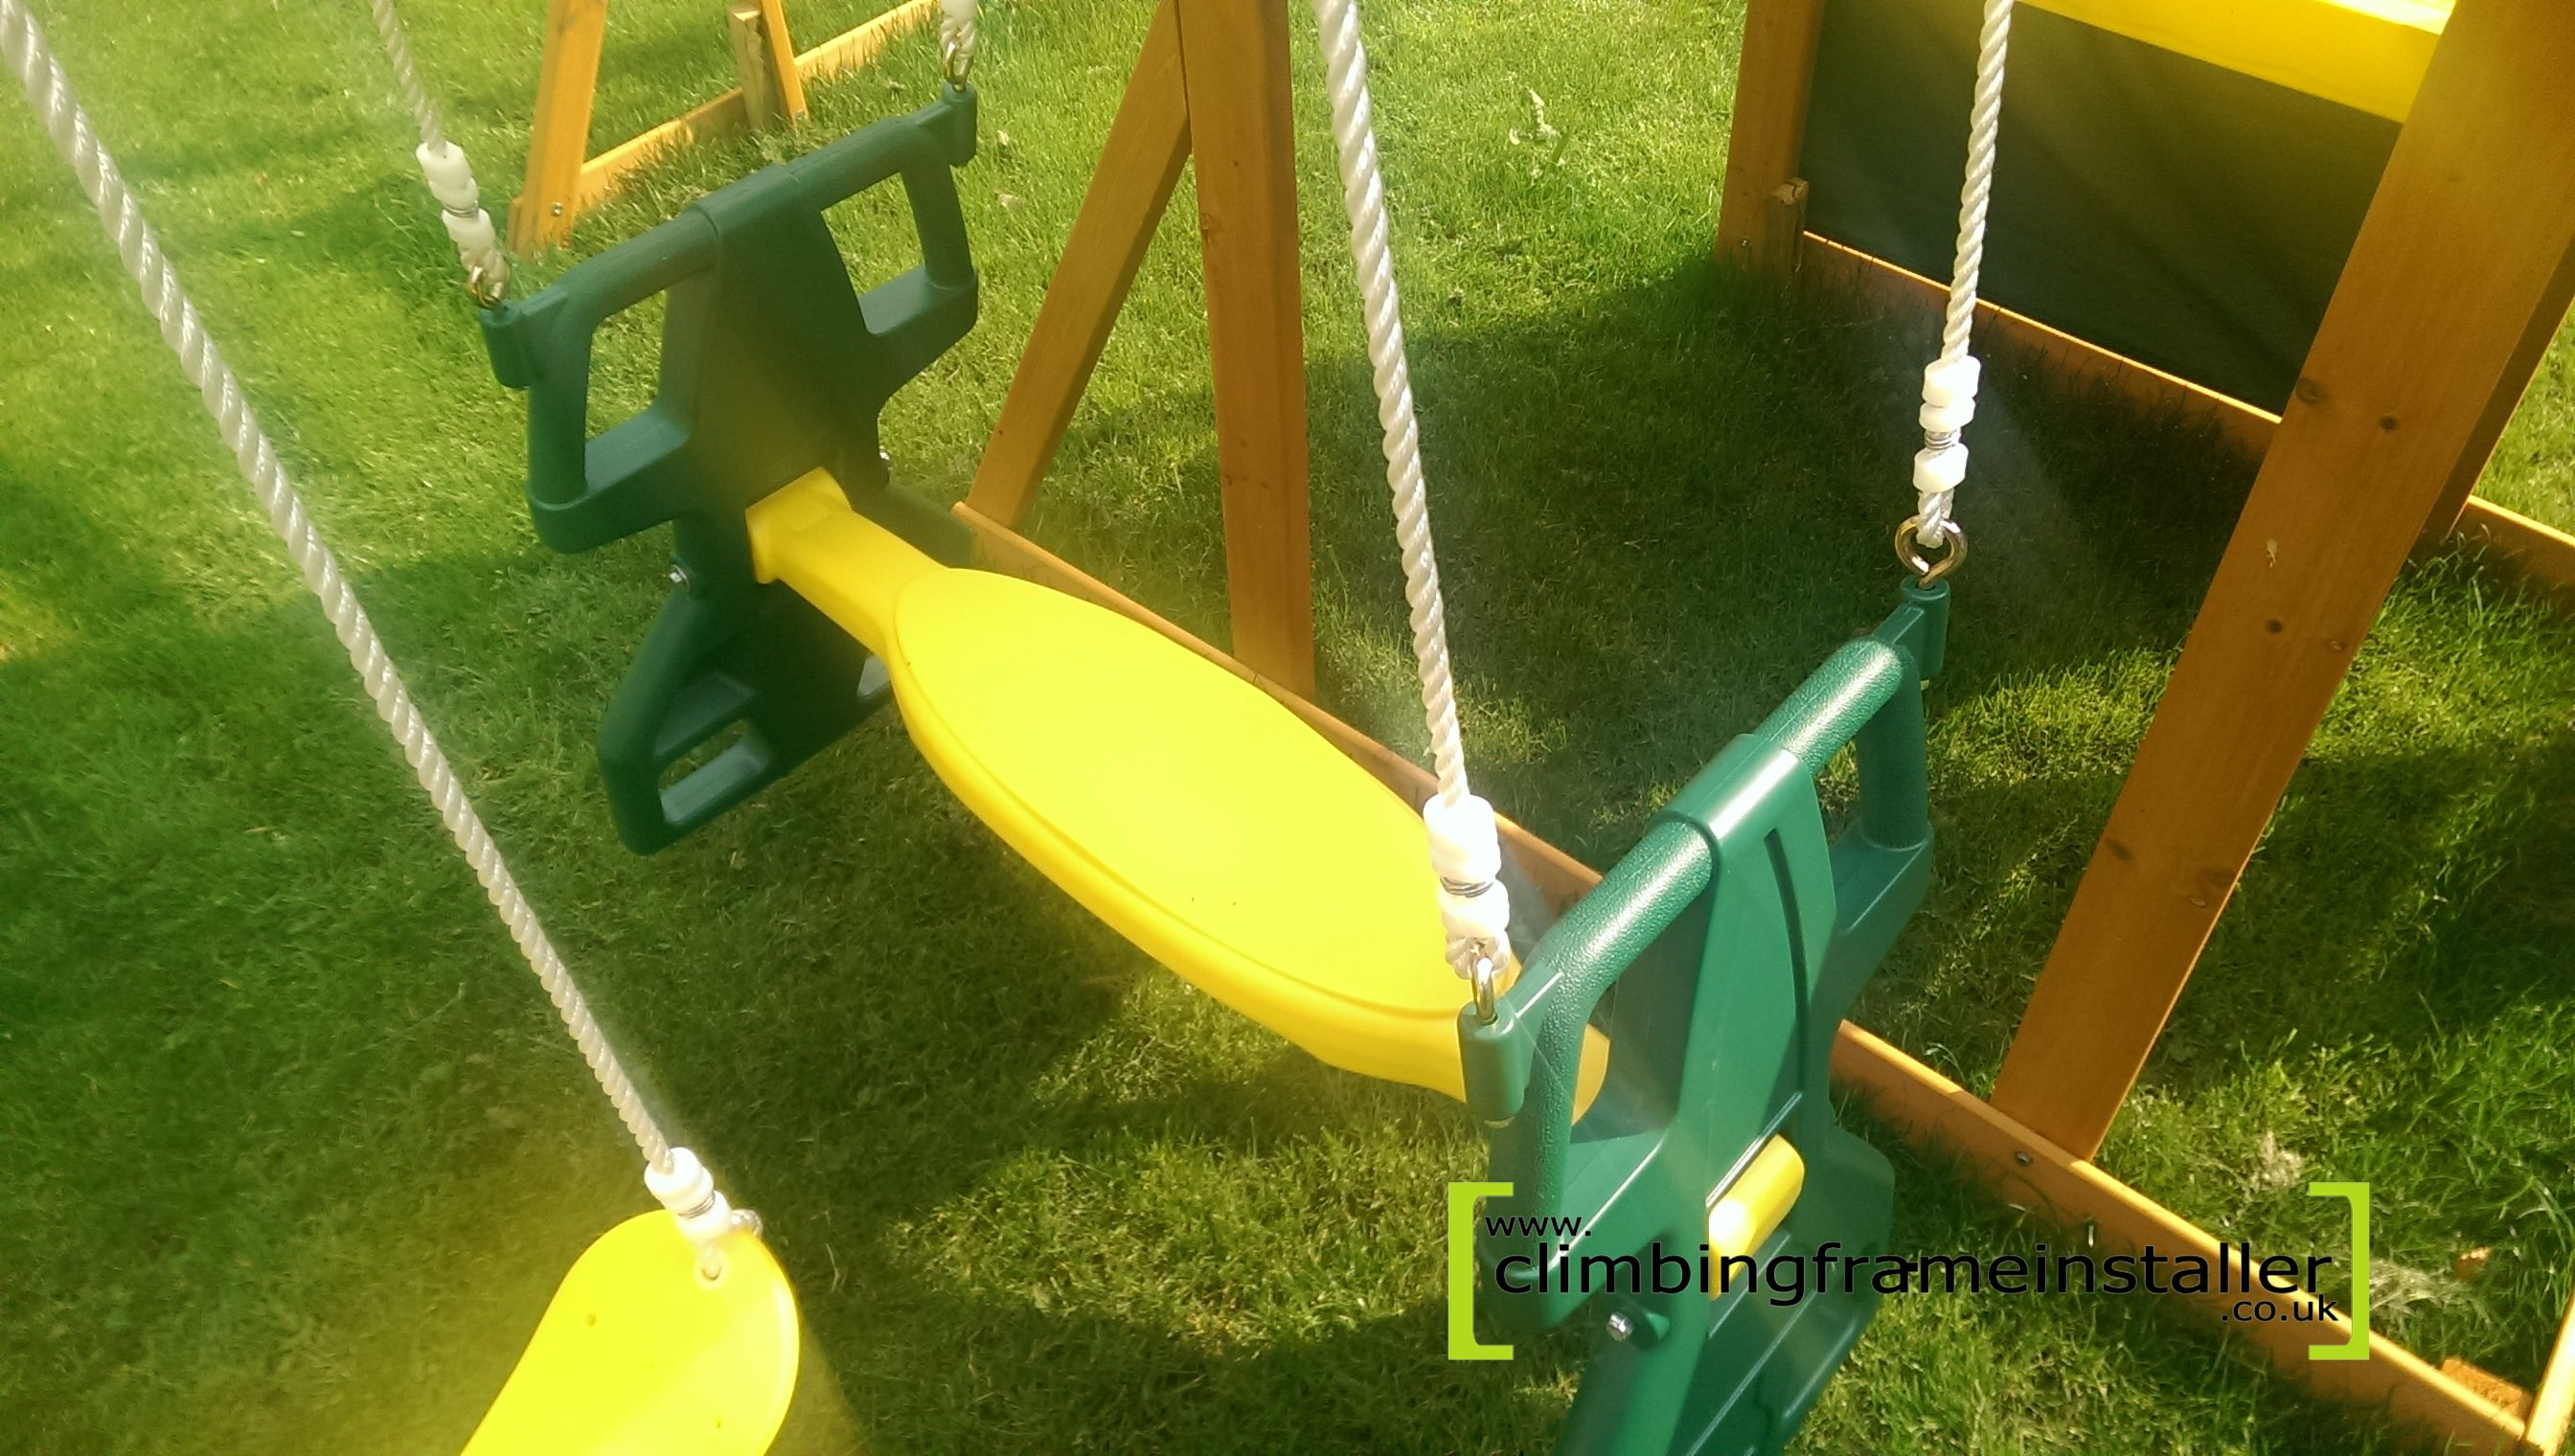 Selwood Climbing Frames with Swings